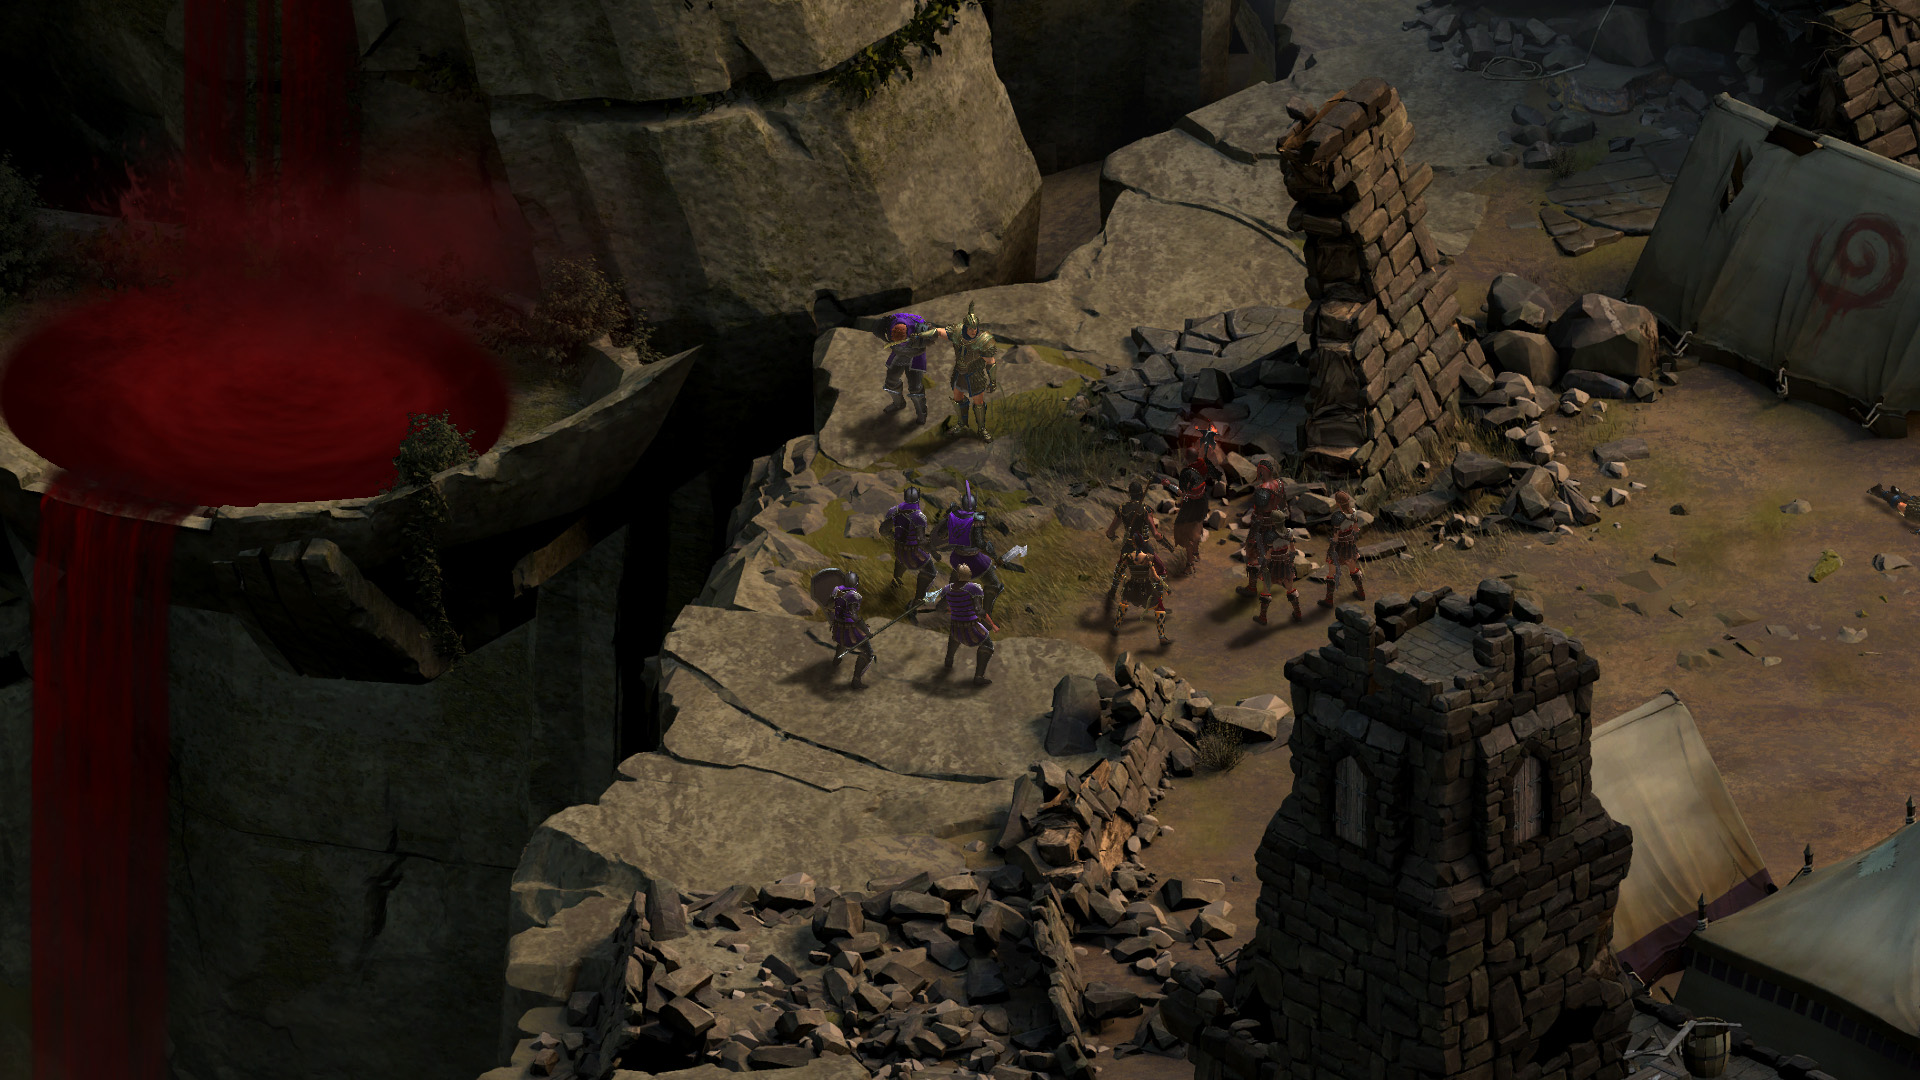 In Obsidian's new RPG Tyranny, you play a bad guy in a world where evil has won